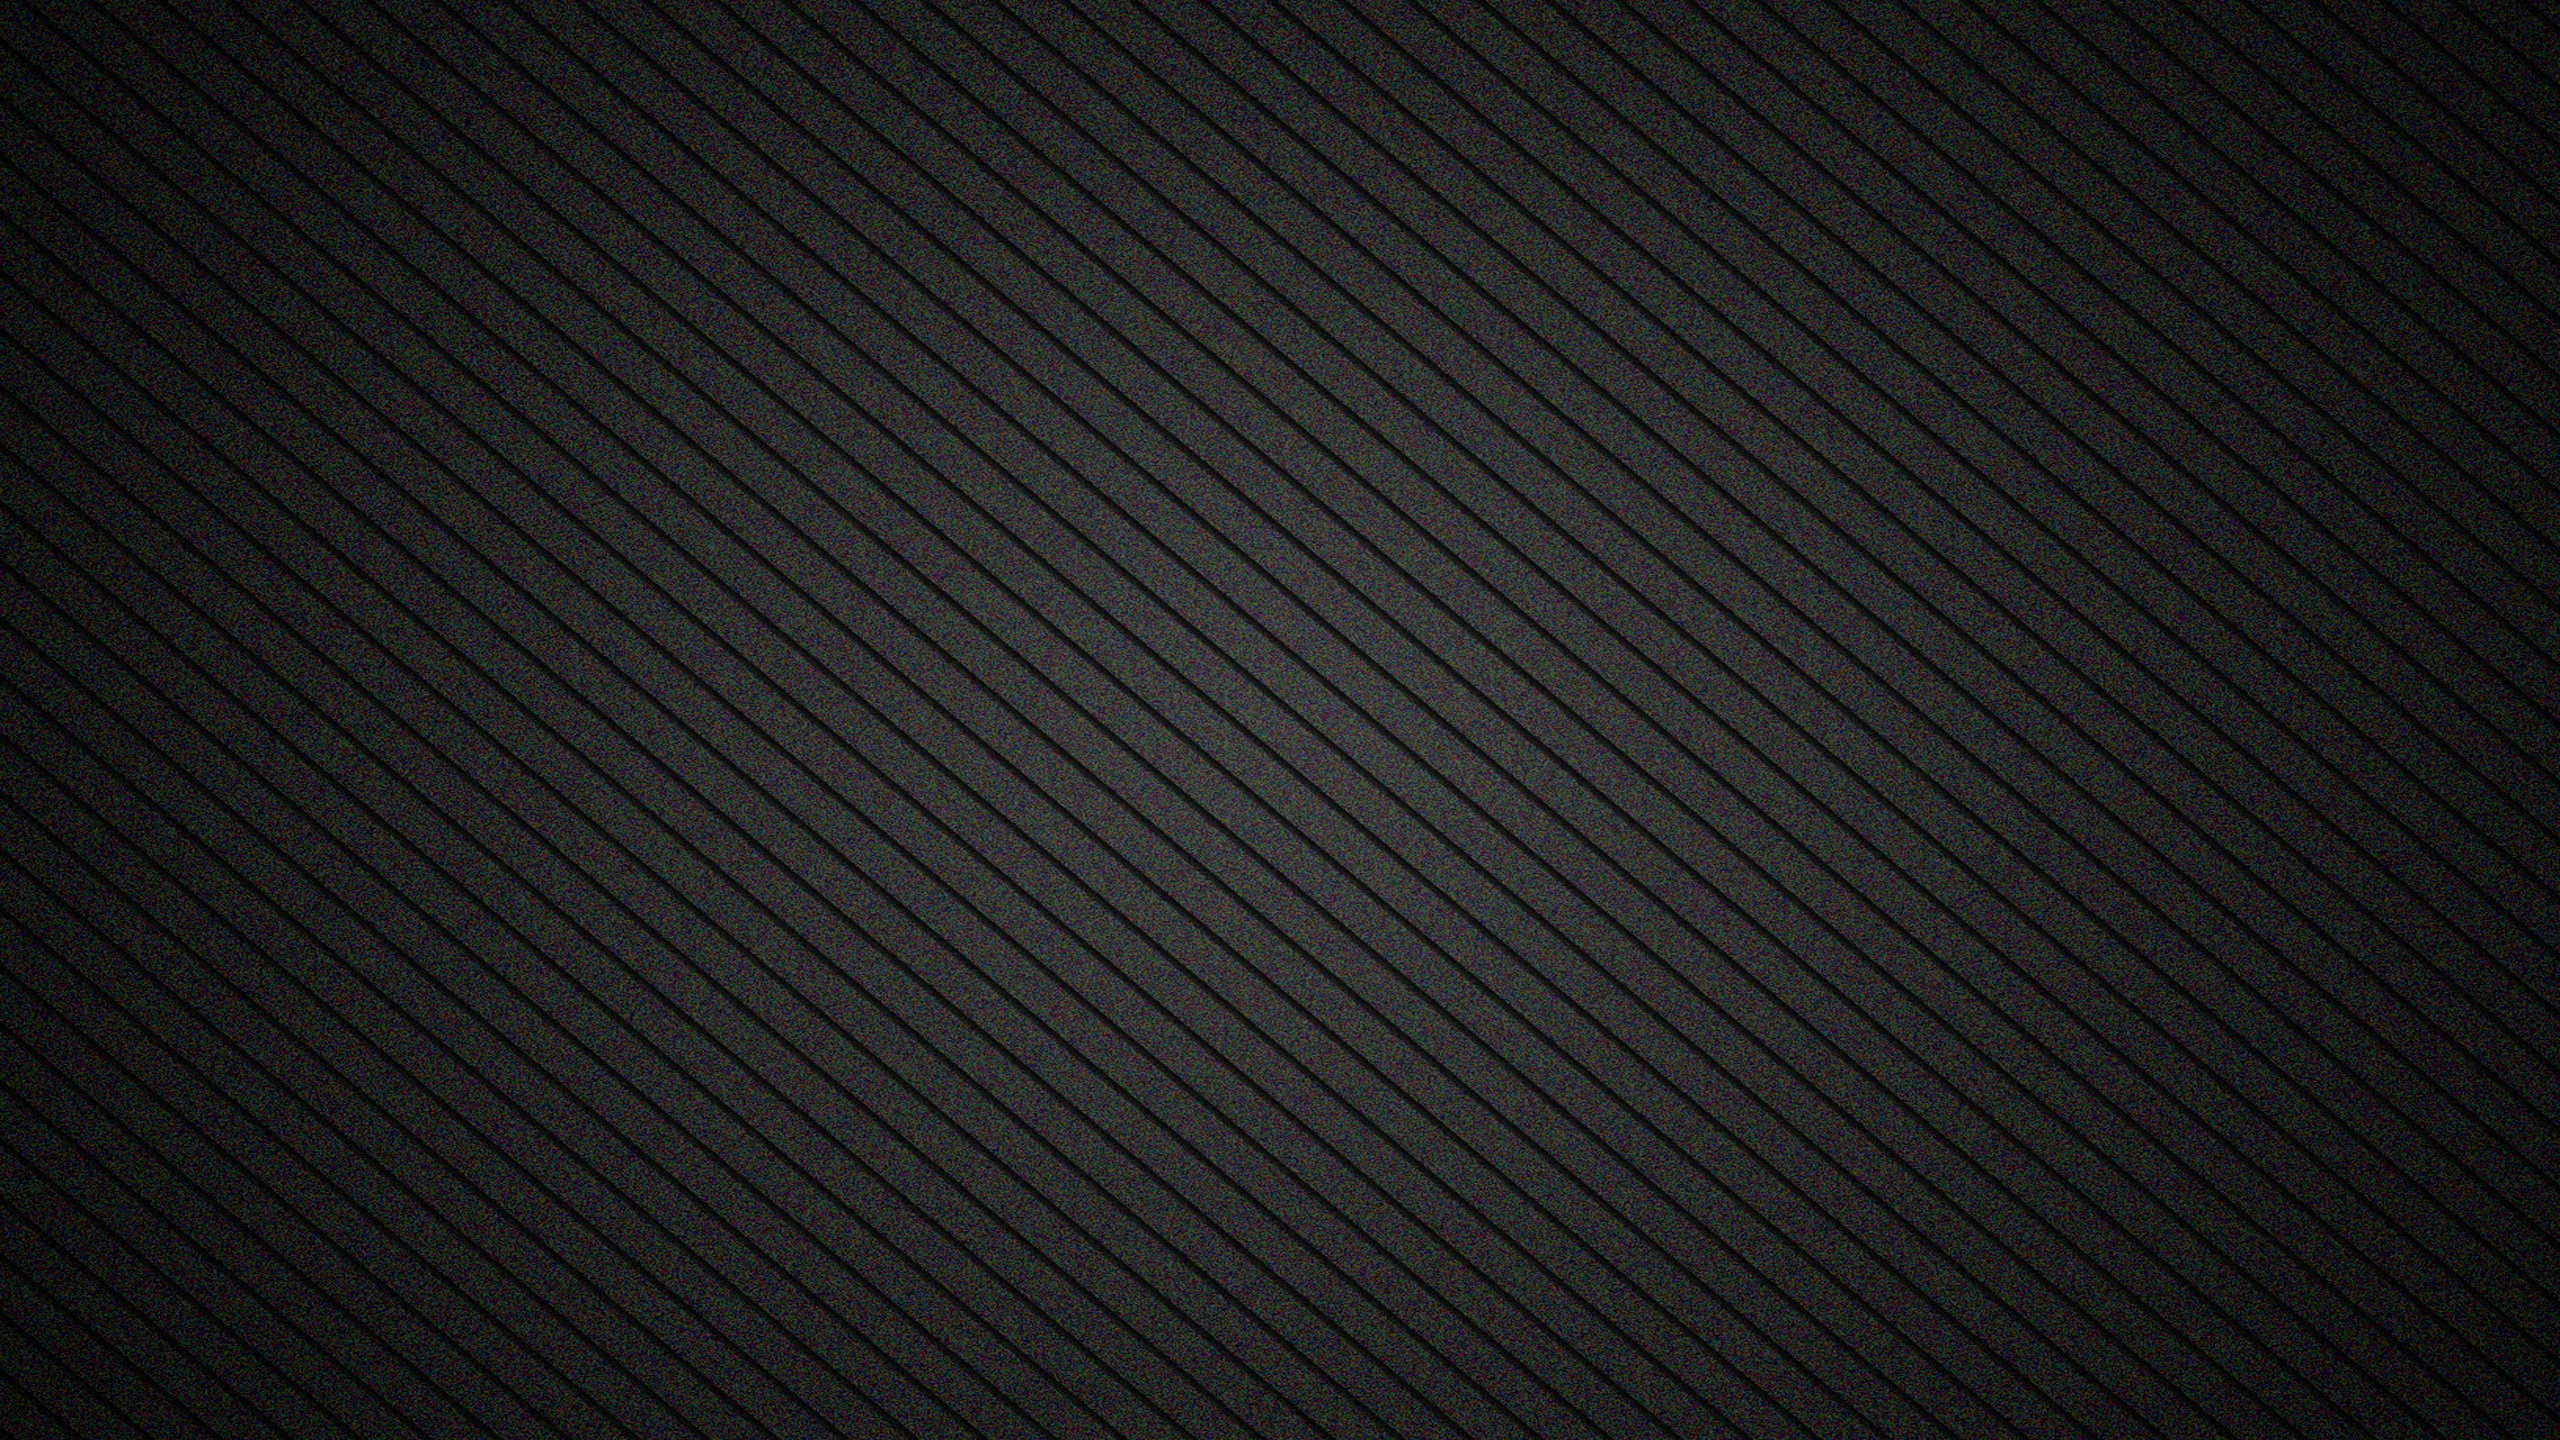 wallpaper wallpapers lines black 2560x1440 2560x1440